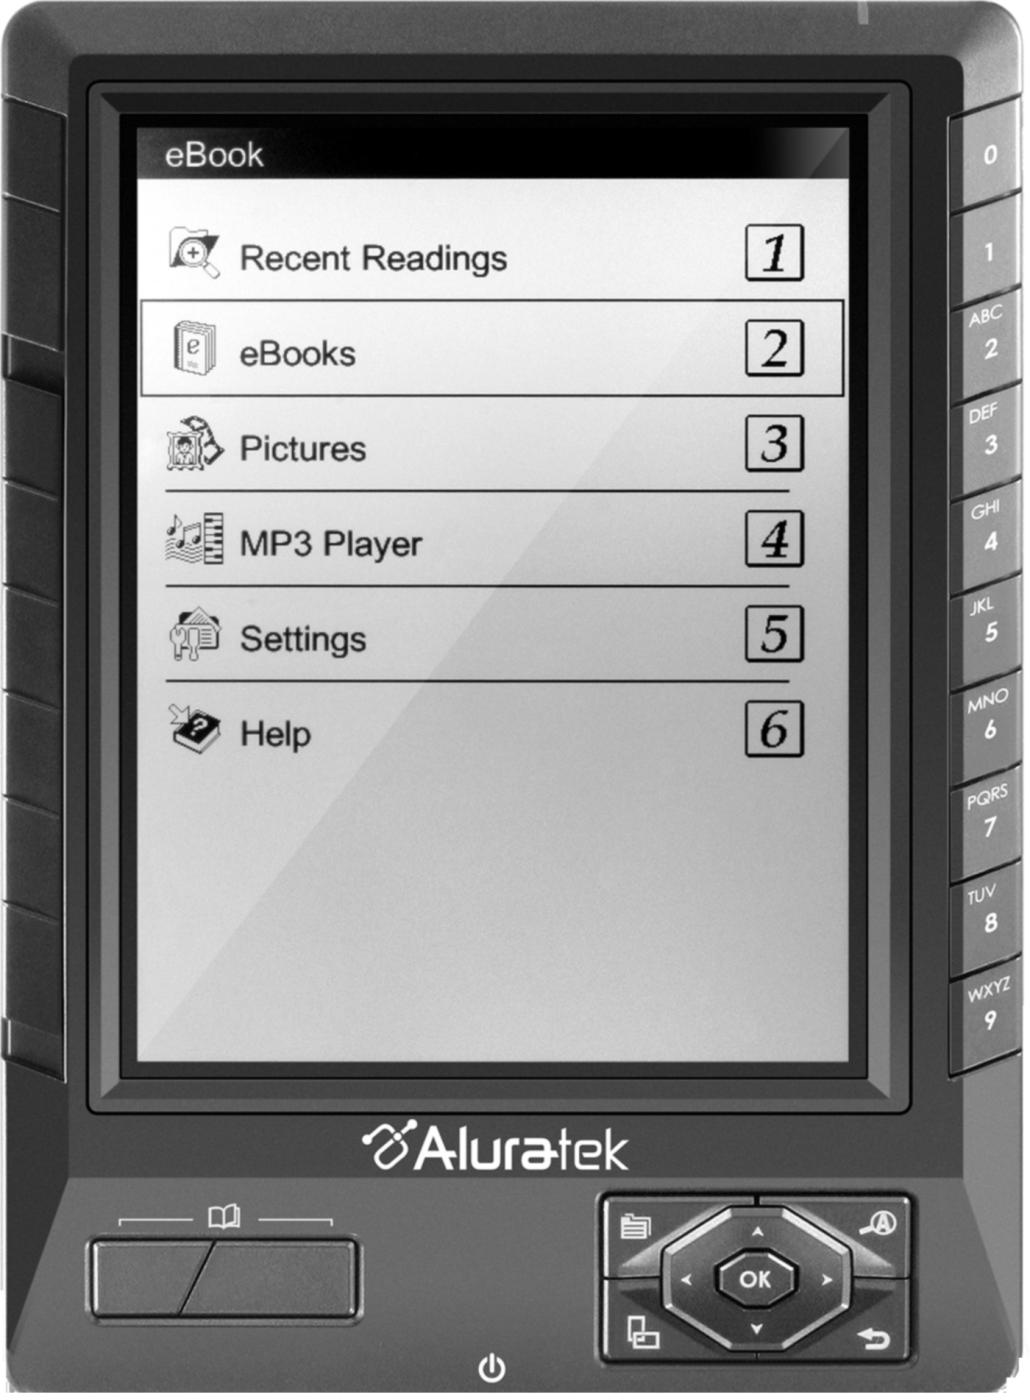 Aluratek LIBRE PRO eBook with 2GB SD Card